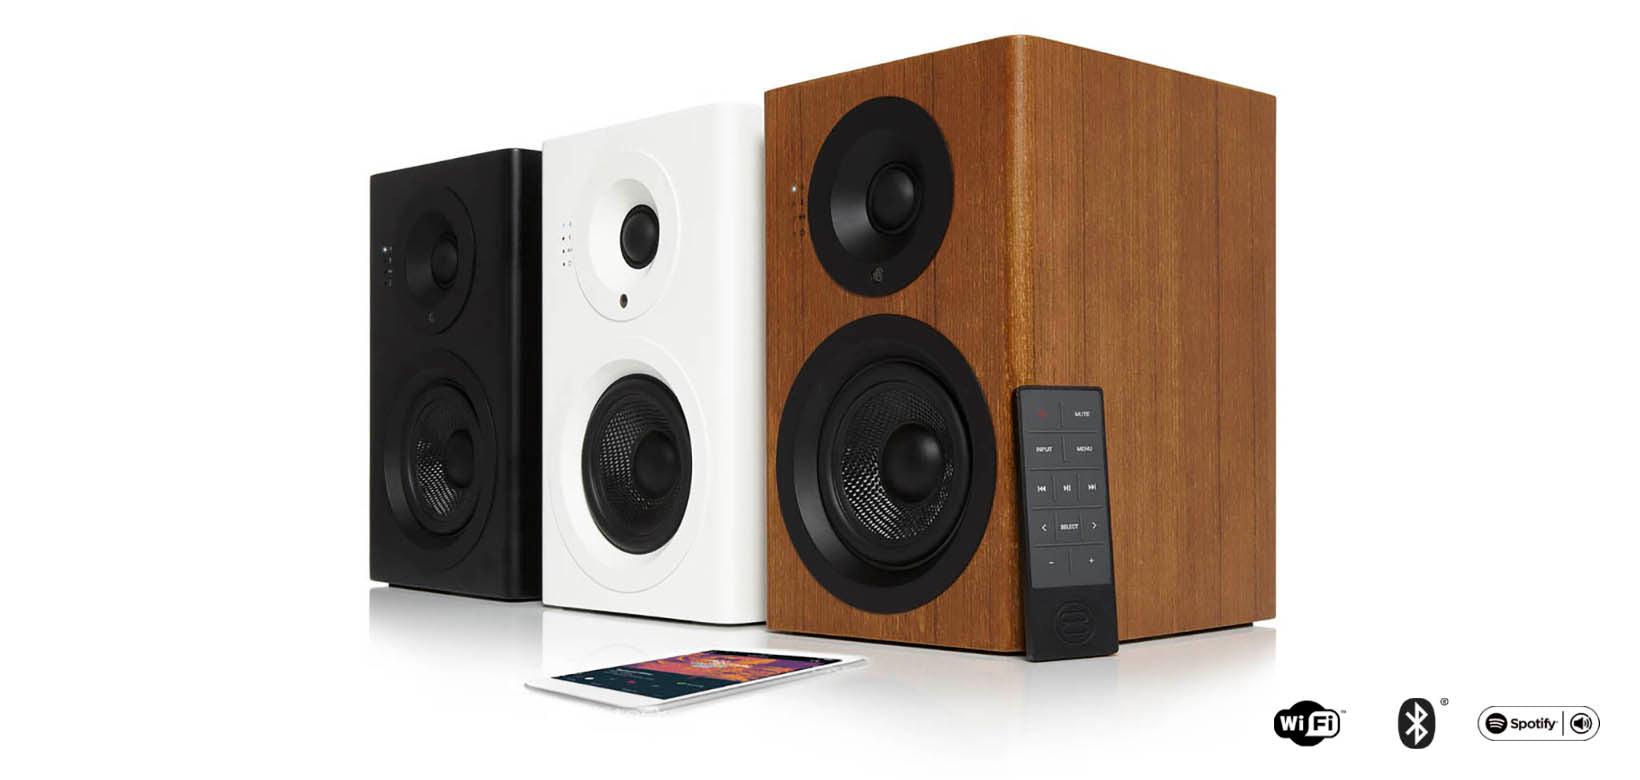 Silverpoint SP2 multi-room speaker